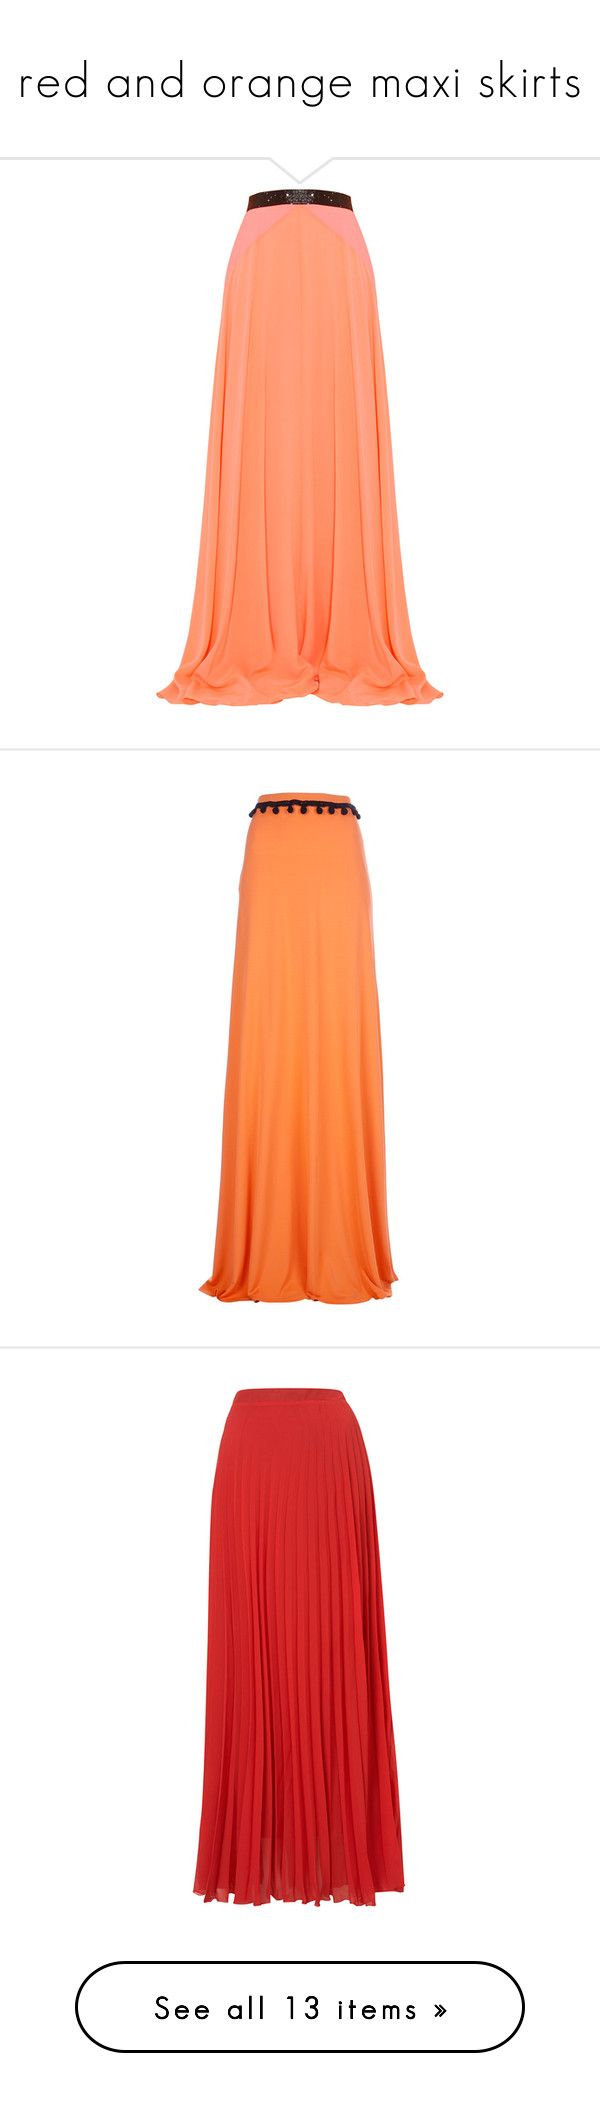 """red and orange maxi skirts"" by lulucosby ❤ liked on Polyvore featuring skirts, bottoms, saias, faldas, maxi skirts, panel maxi skirt, long red skirt, red maxi skirt, full skirt and red full skirt"